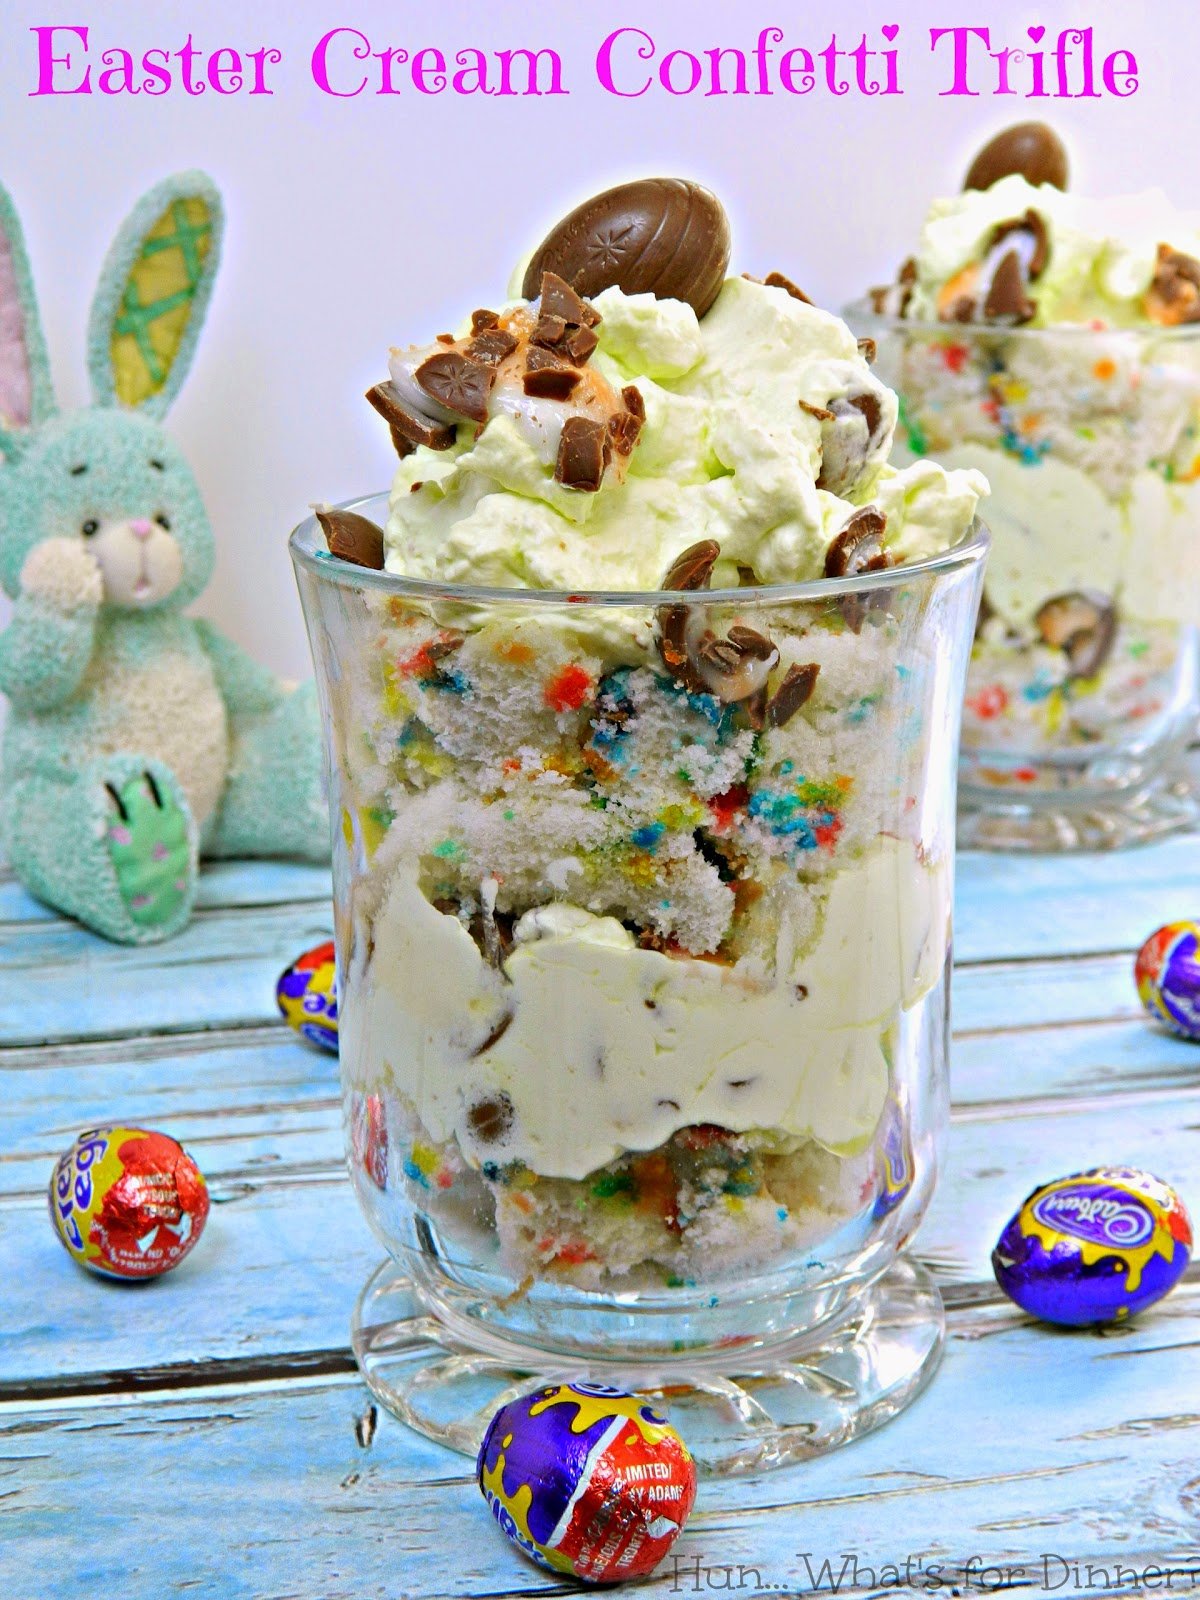 Easter Cream Confetti Trifle